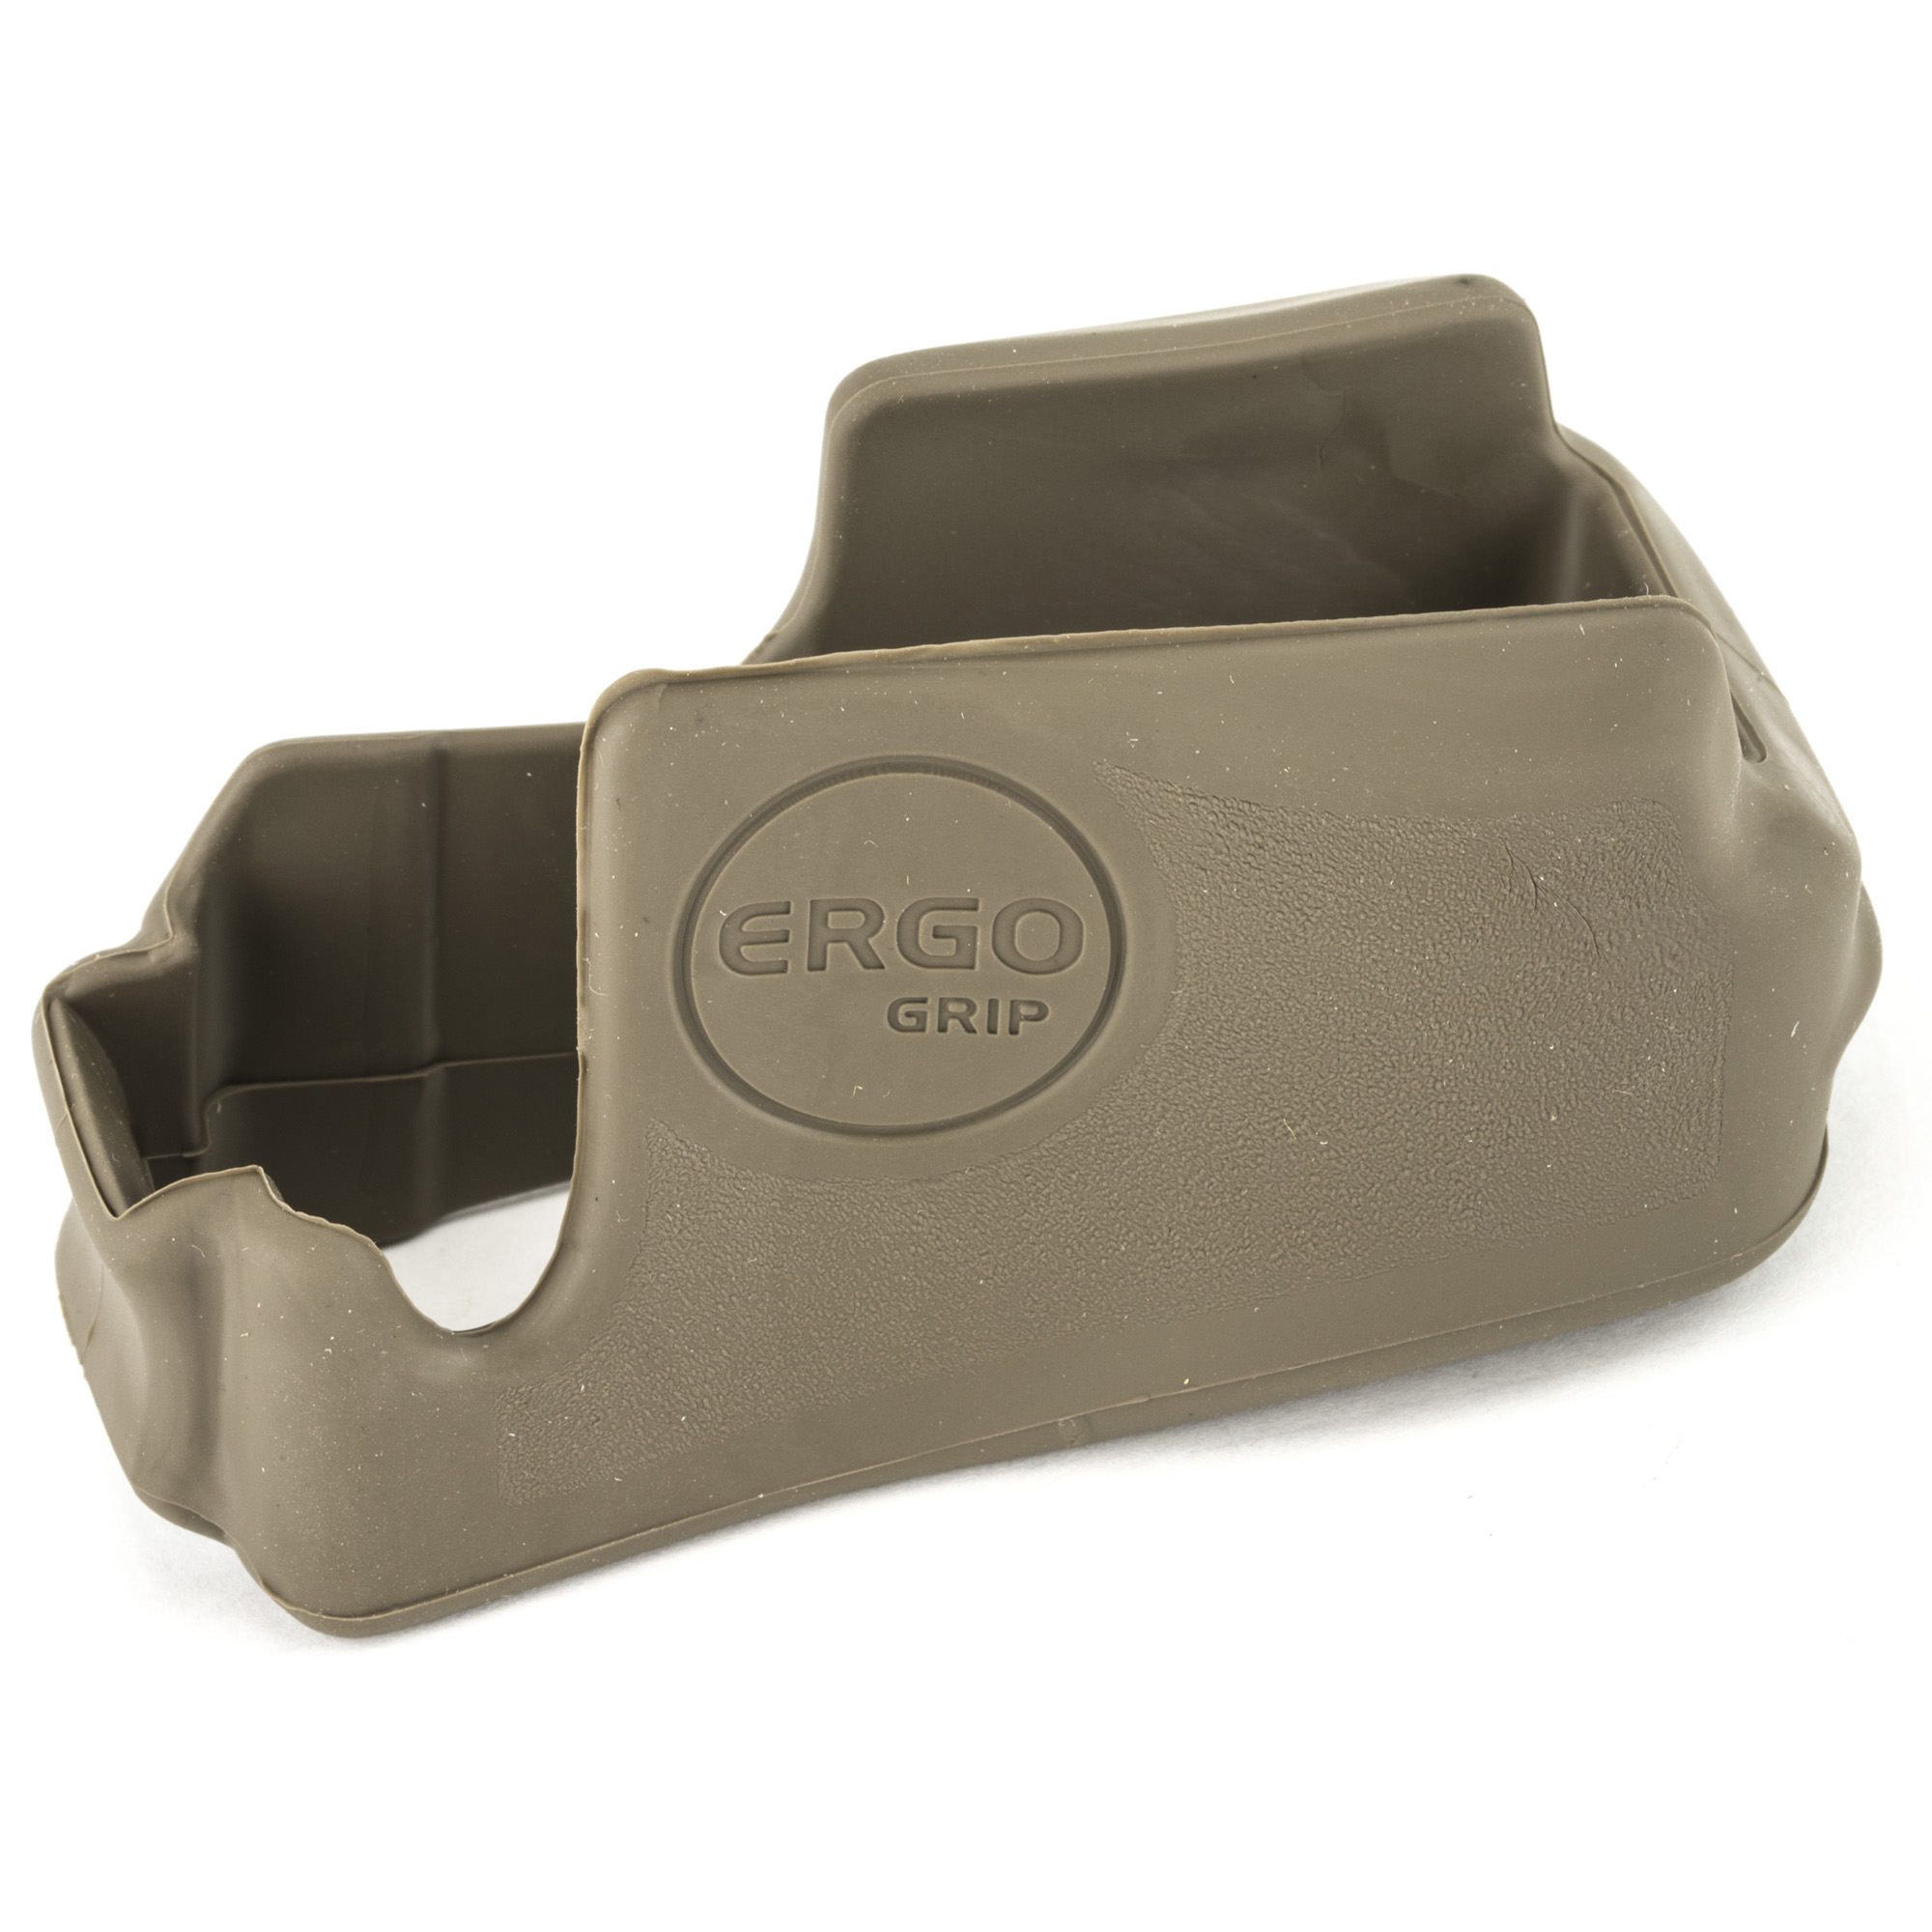 ERGO's Never Quit AR/M4 Magwell Grip reconfigures the squared shape of the AR/M4 magazine well into an ergonomic and comfortable grip option. It gives AR-15/M4 receivers a distinctive aesthetic upgrade.